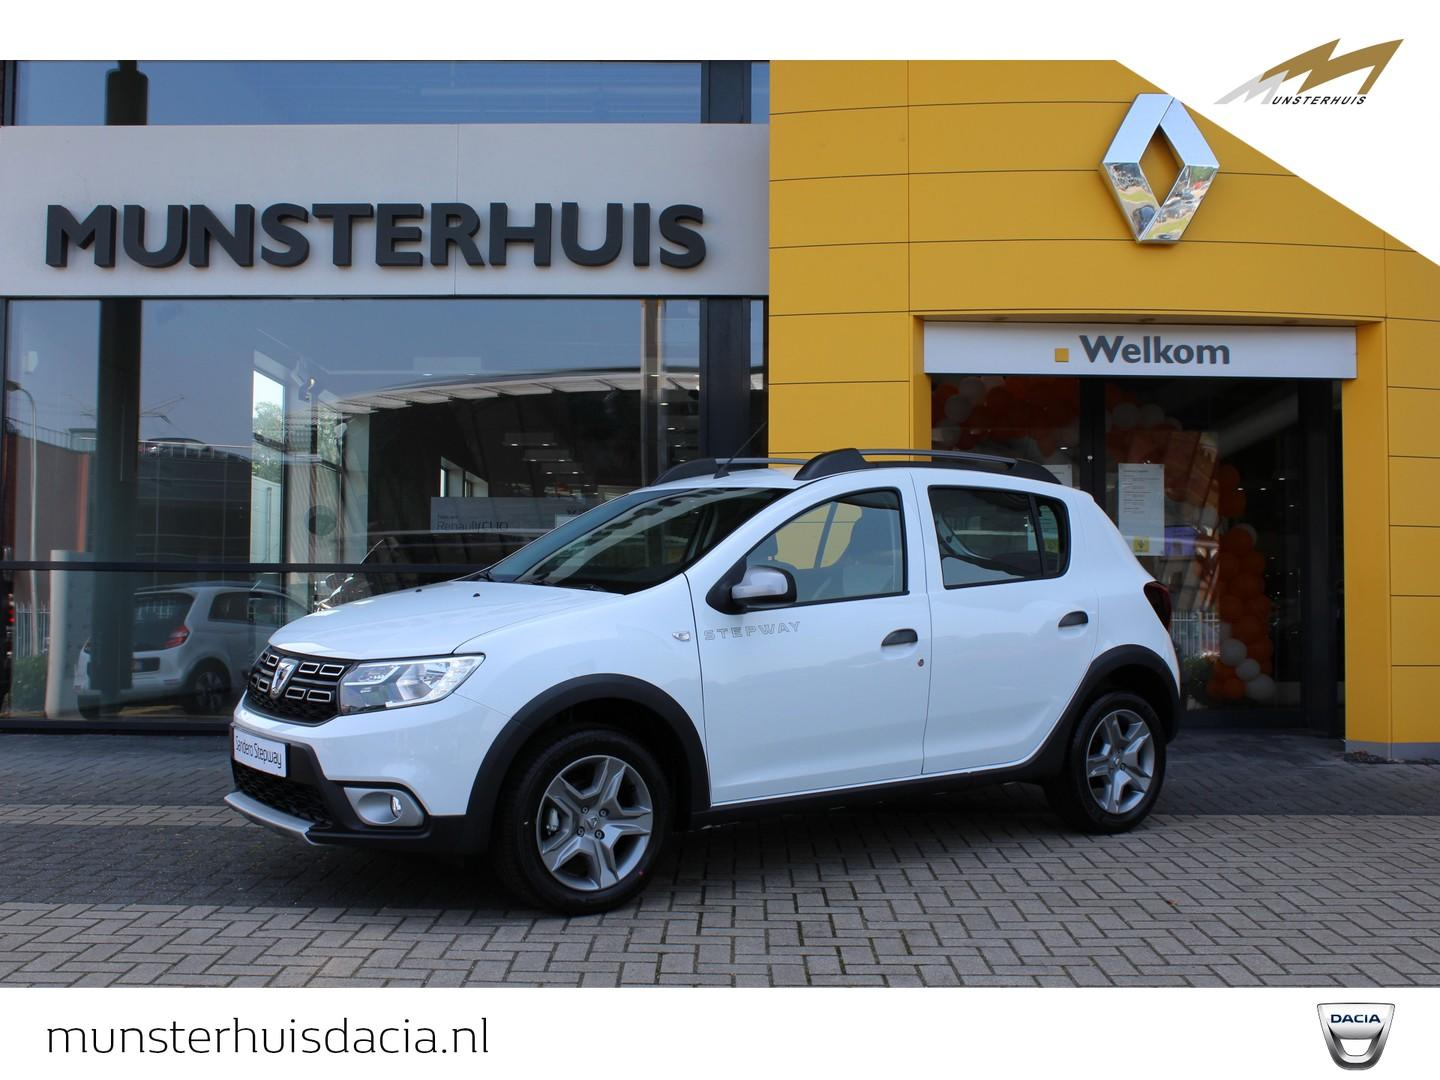 Dacia Sandero Tce 90 stepway - nu €285,-* met private lease !!